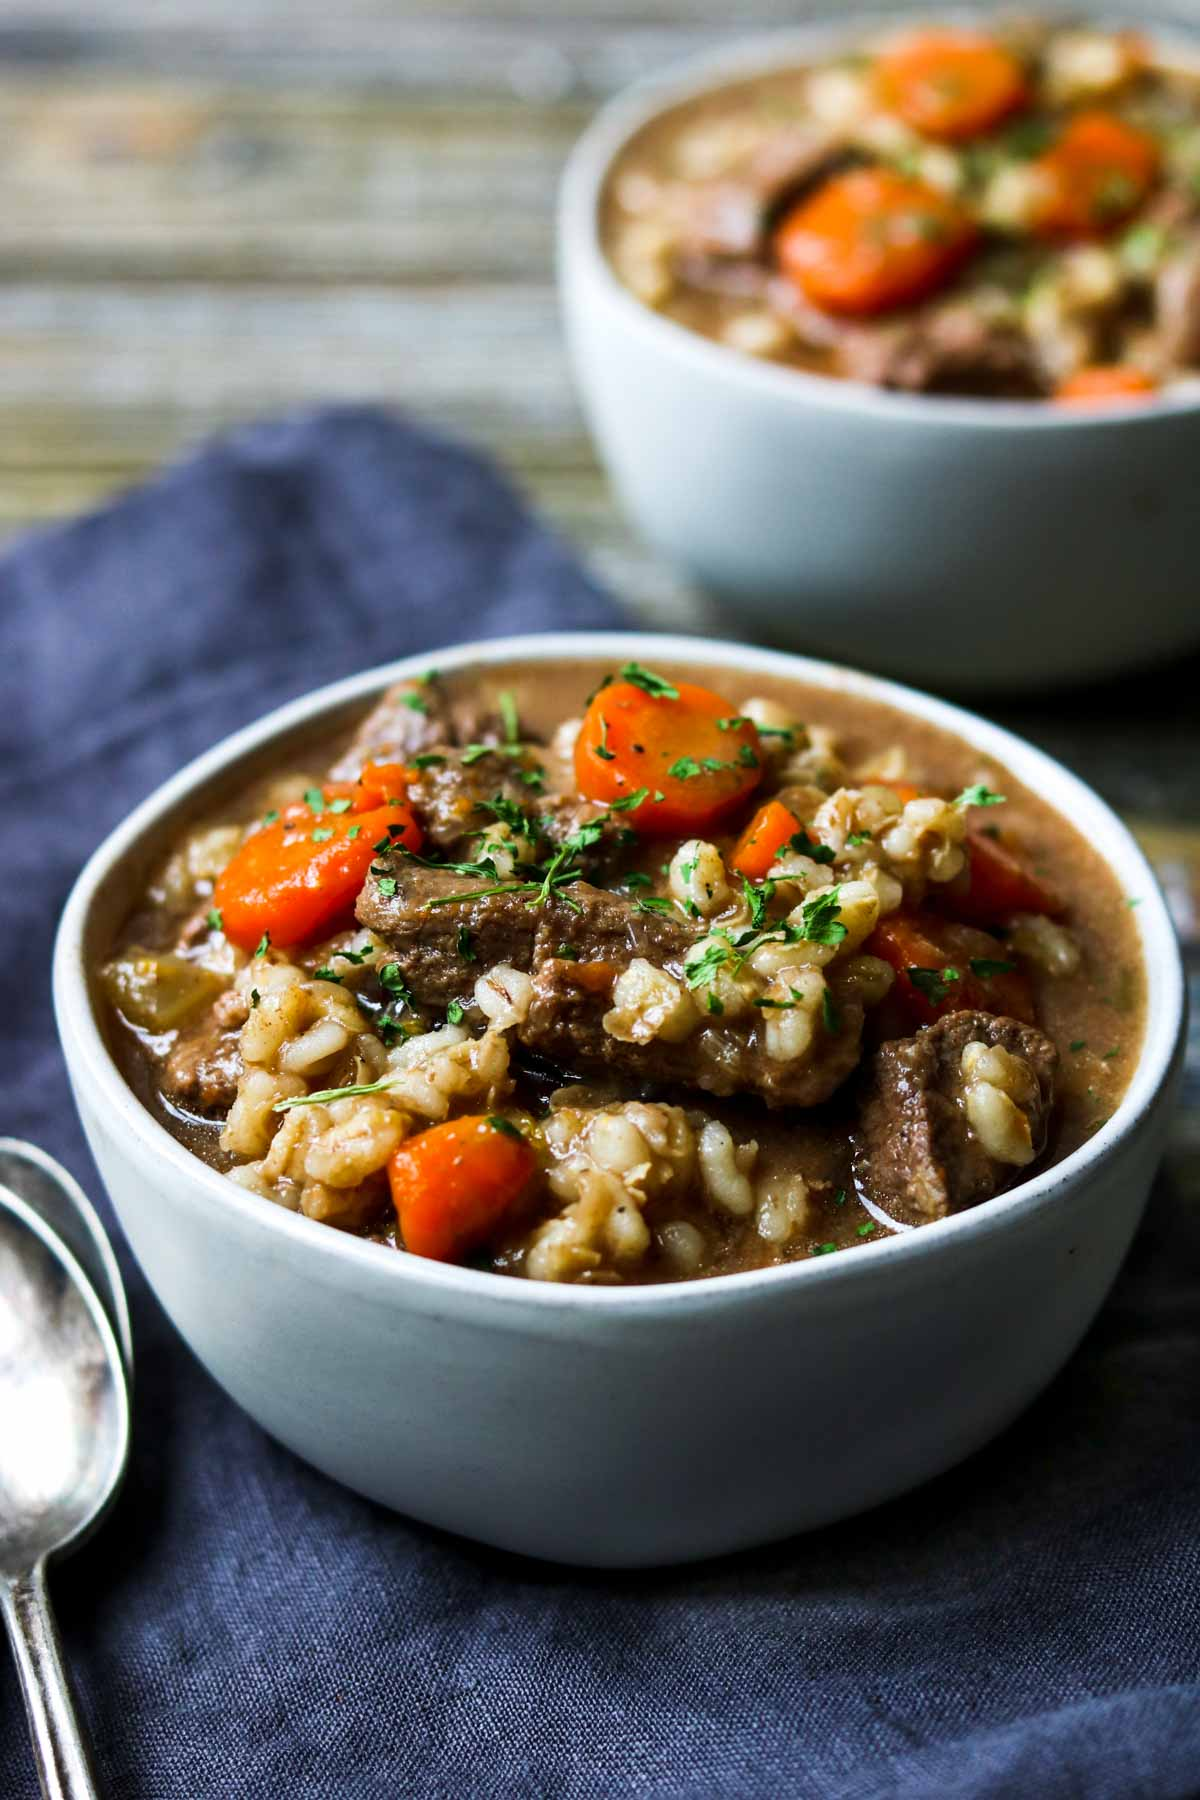 Instant Pot Beef and Barley Stew in a white bowl with a blue napkin